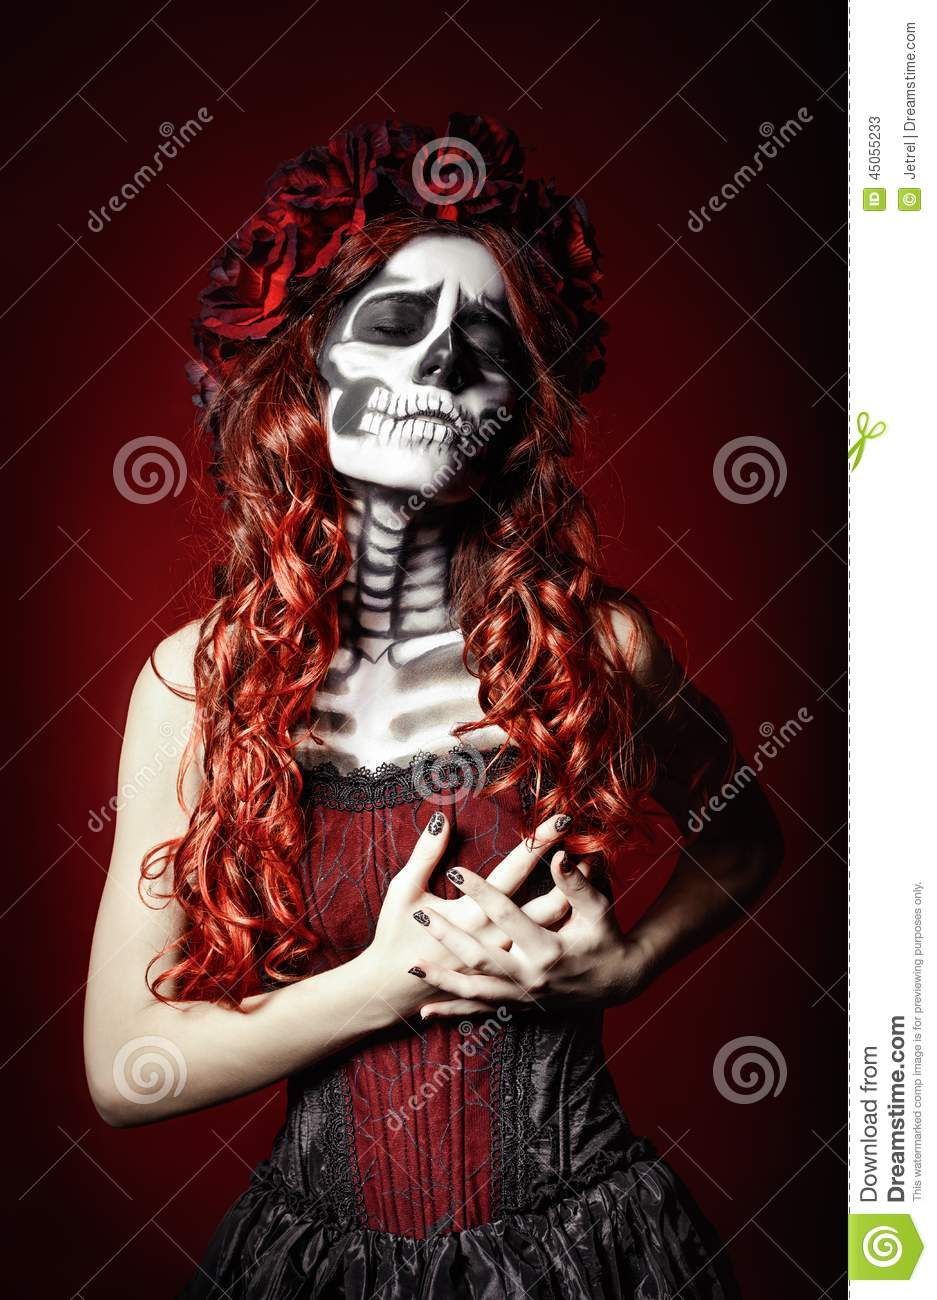 Sad young woman with muertos makeup (sugar skull) holding her chest